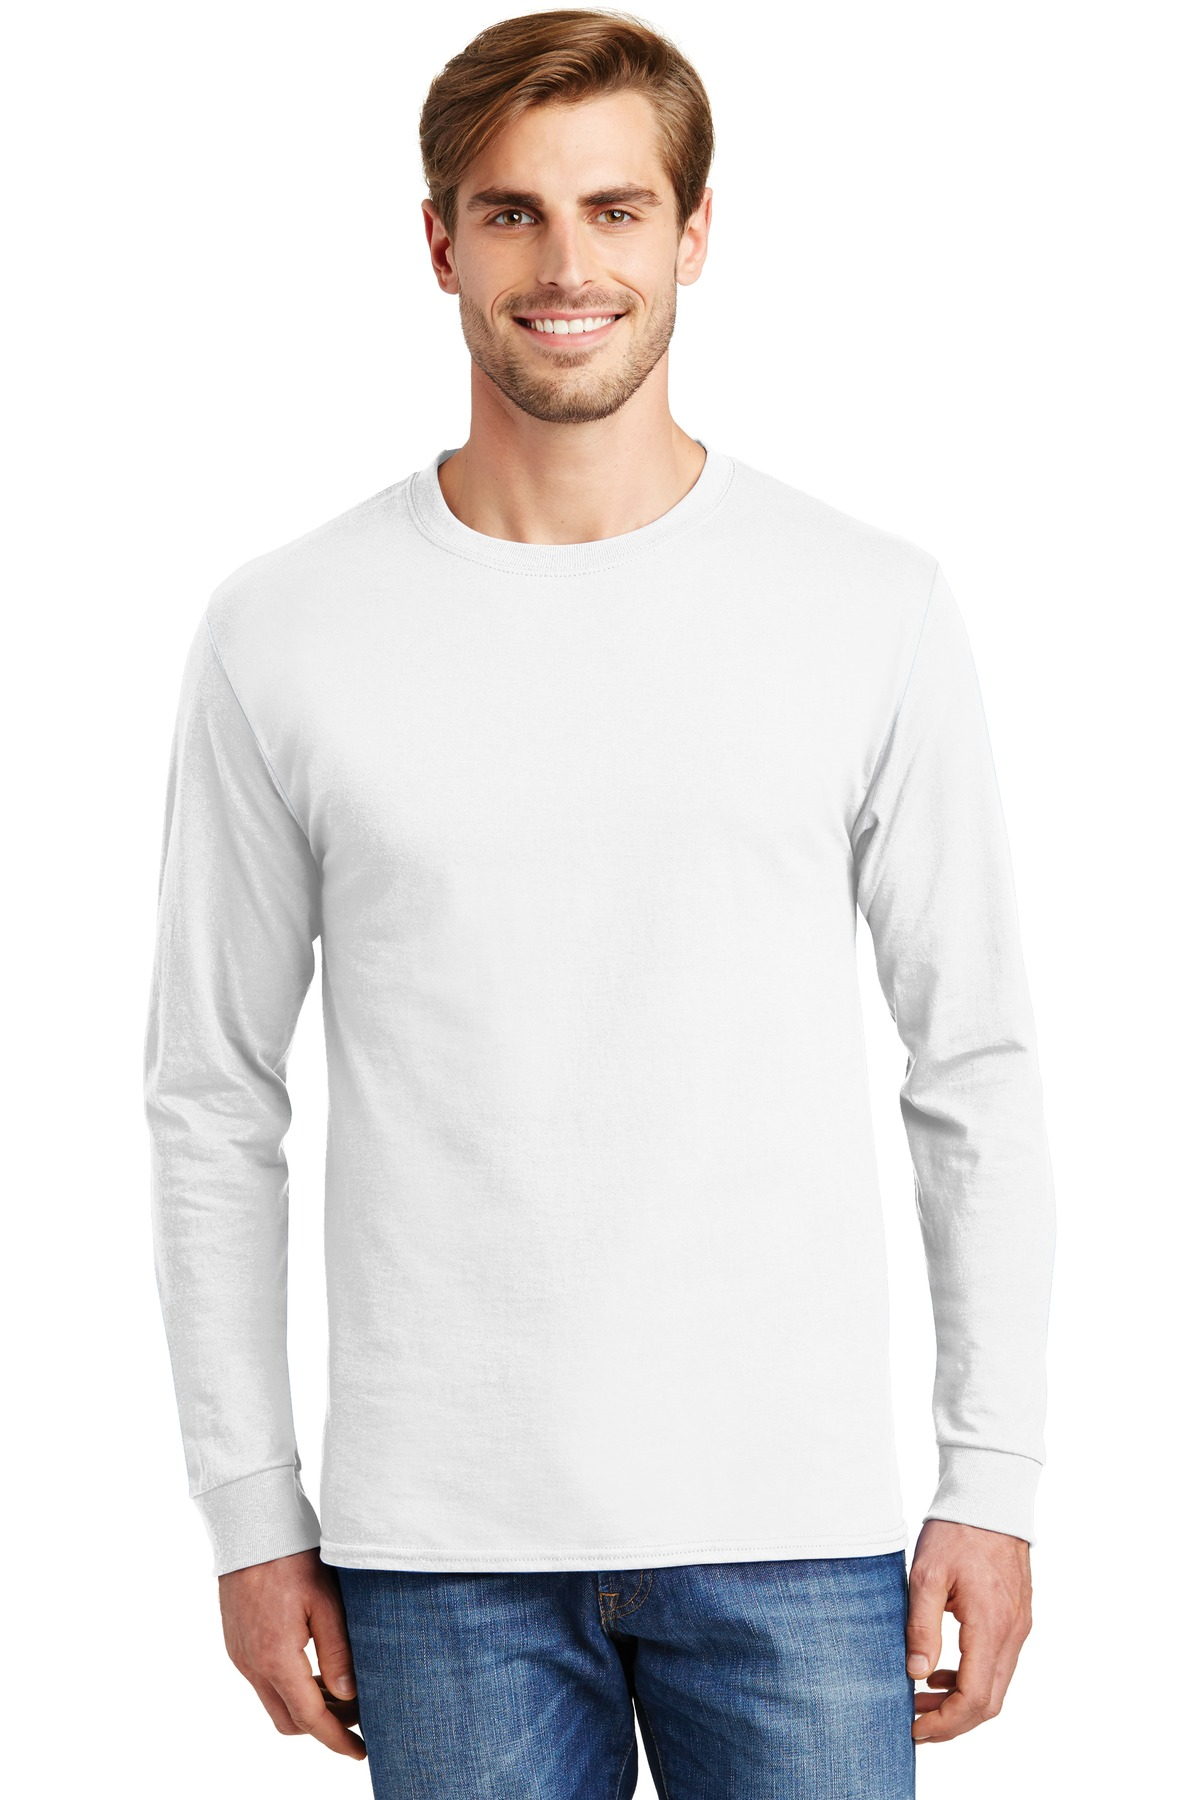 Hanes ®  - Tagless ®  100% Cotton Long Sleeve T-Shirt.  5586 - White